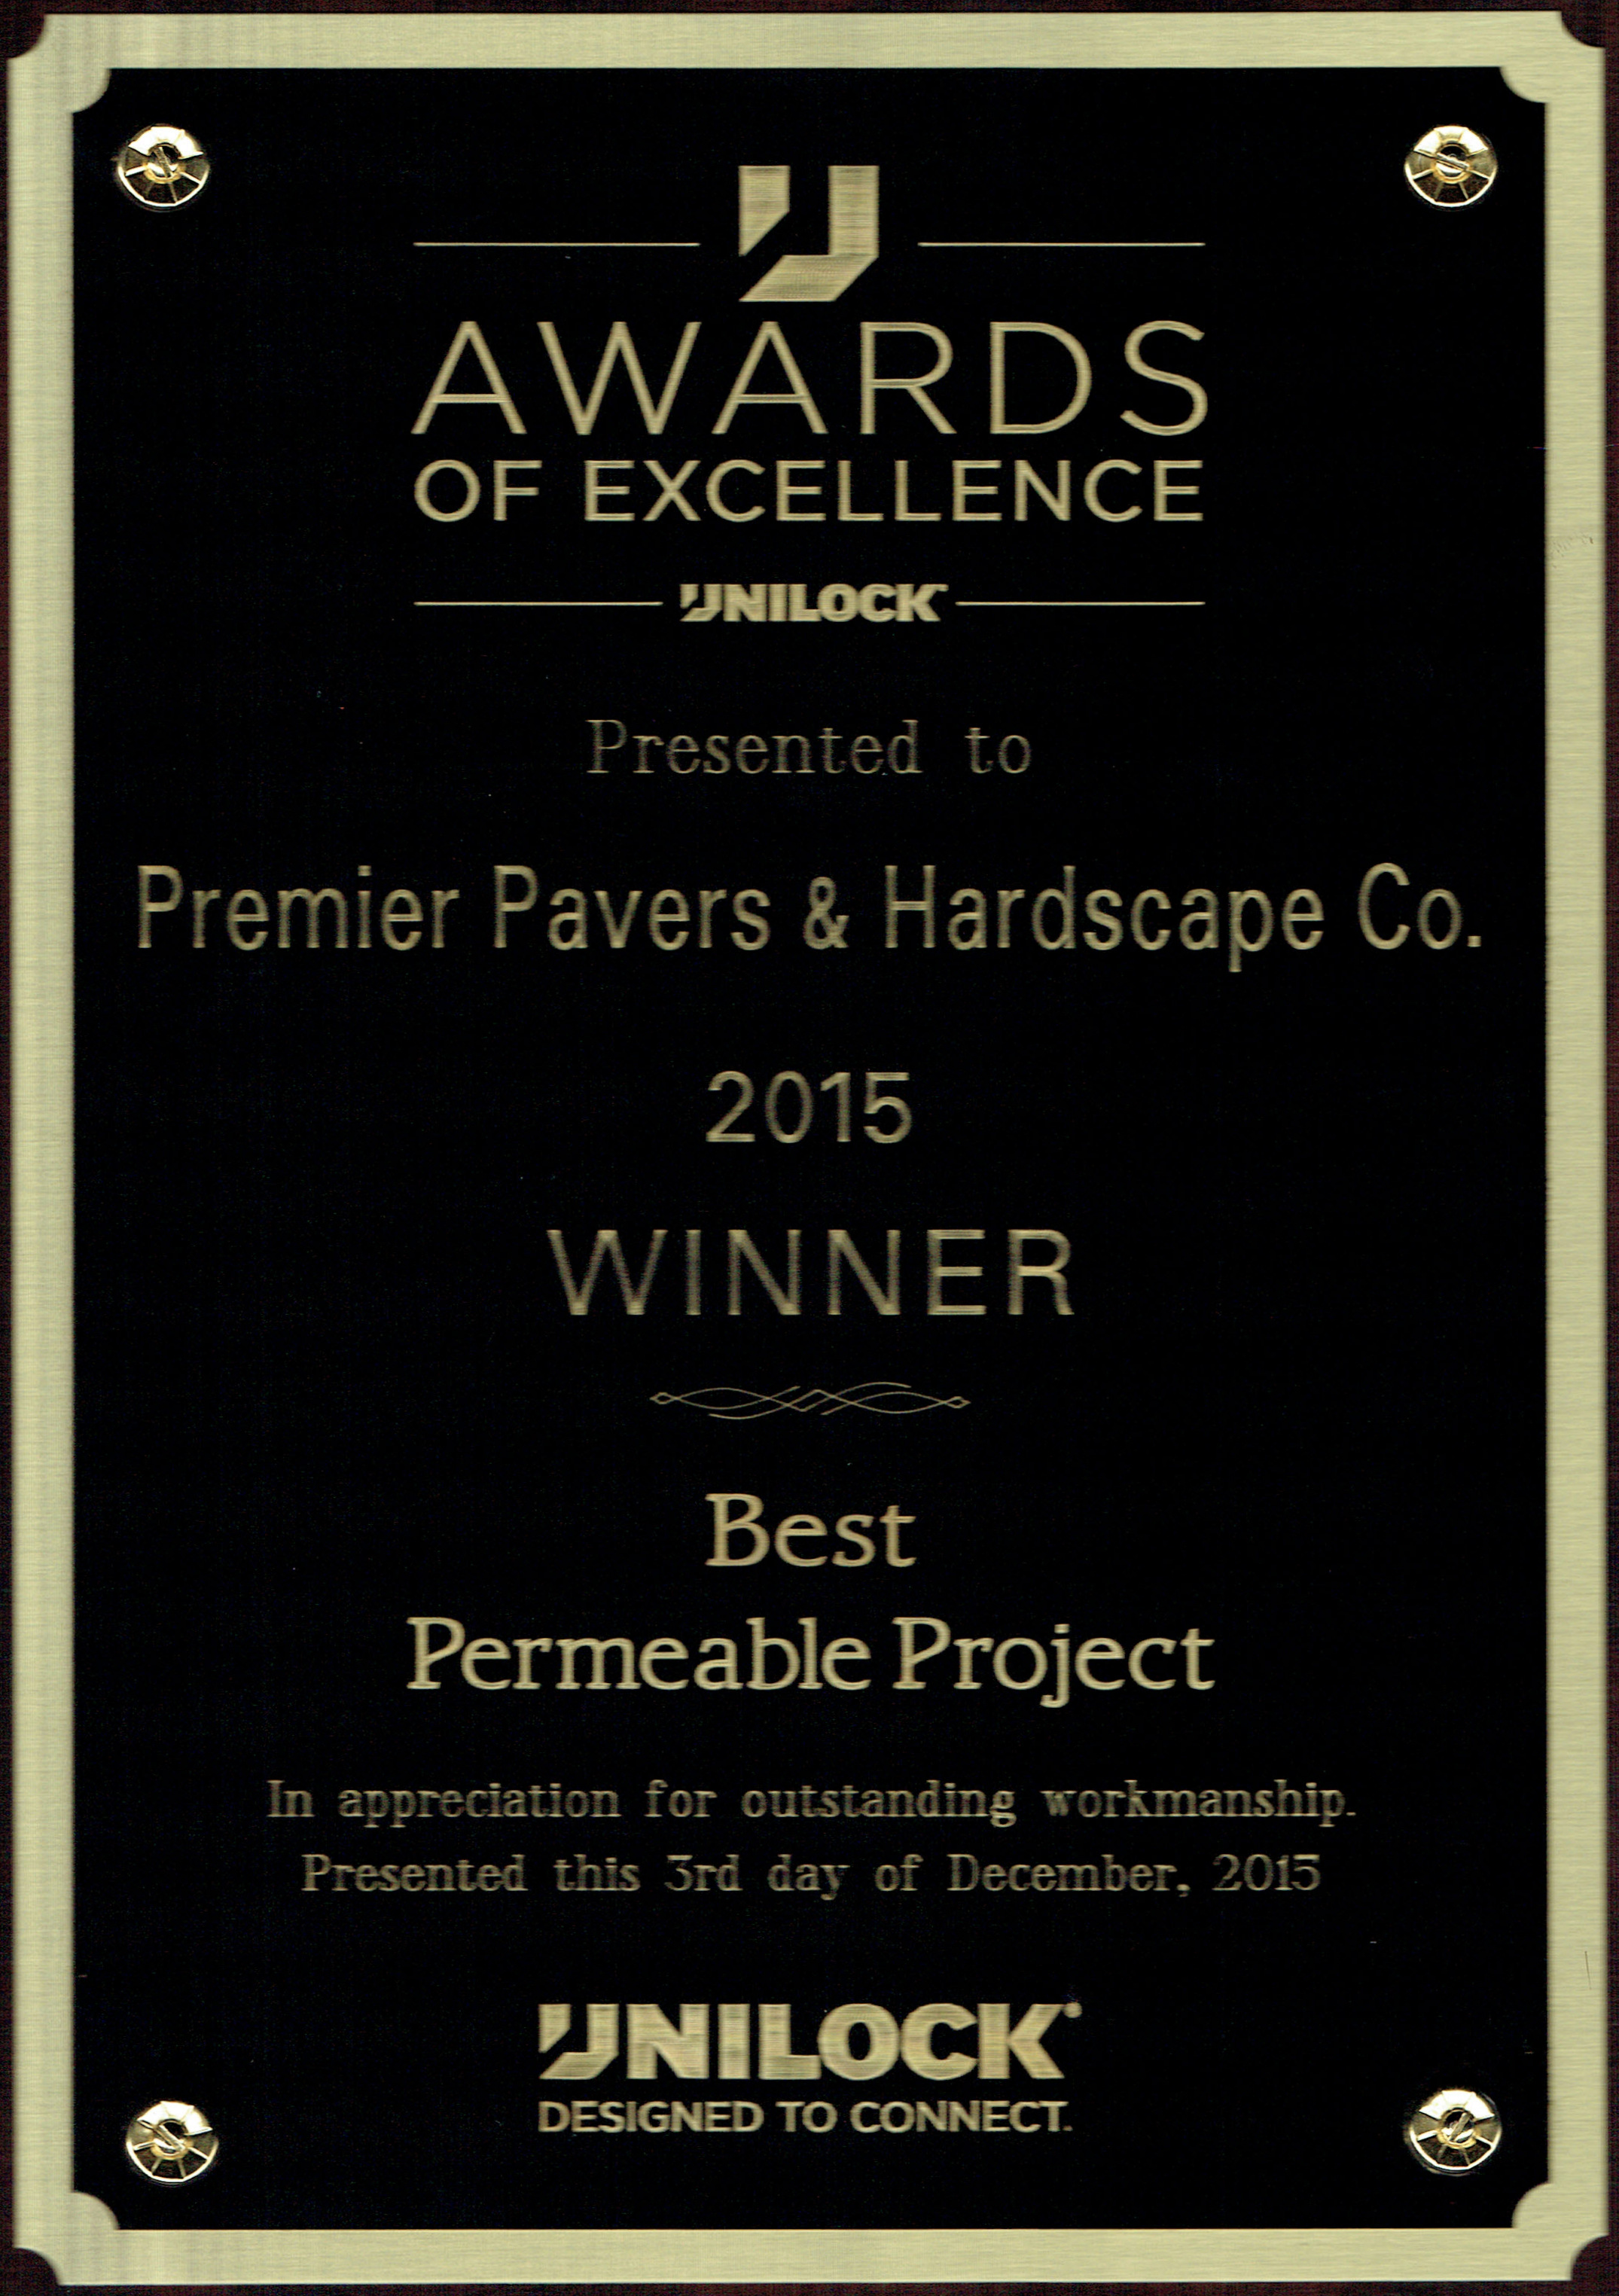 Unilock awards of excellence for stunning landscaping work in Lexington, Massachusetts